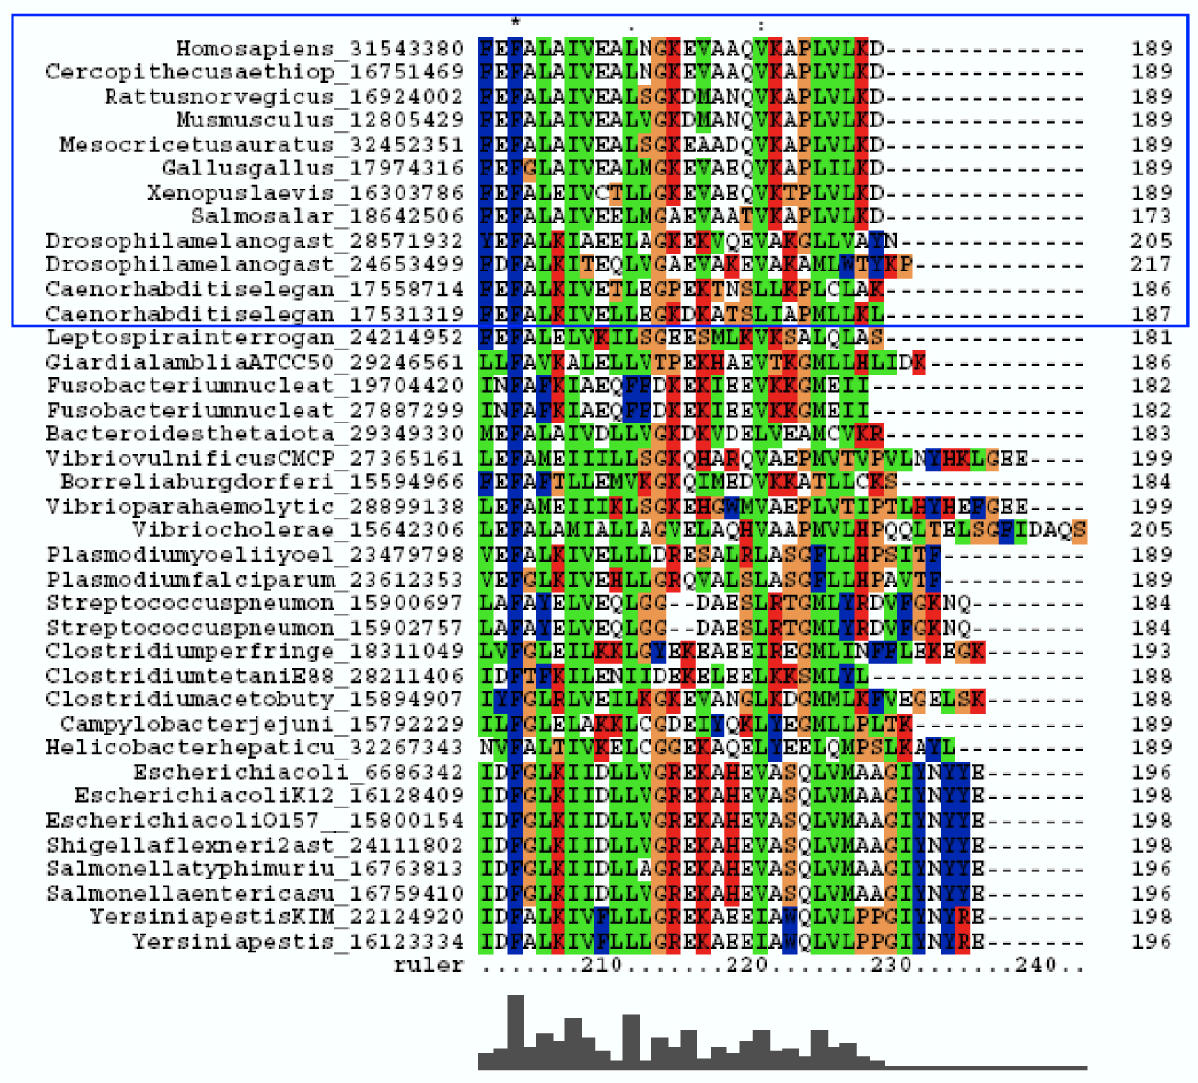 http://static-content.springer.com/image/art%3A10.1186%2F1471-2148-4-6/MediaObjects/12862_2003_Article_66_Fig4_HTML.jpg